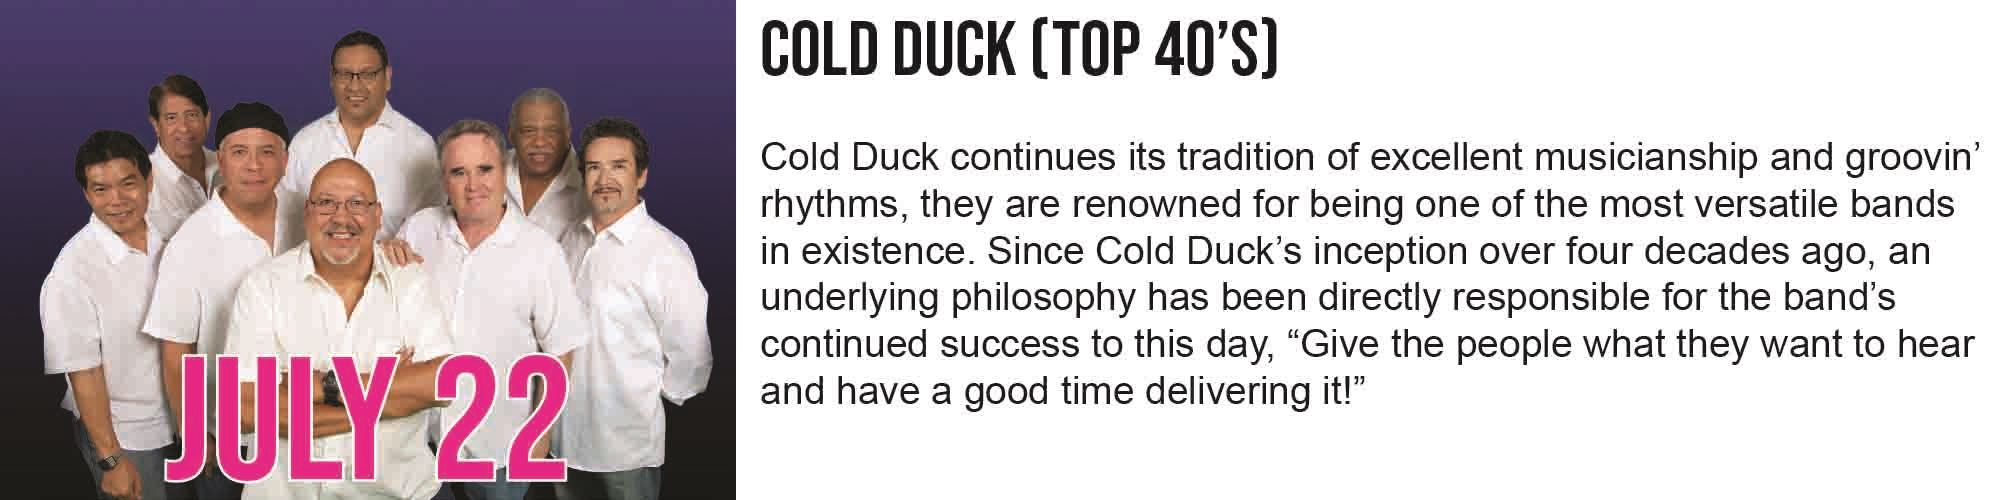 Cold Duck Graphic